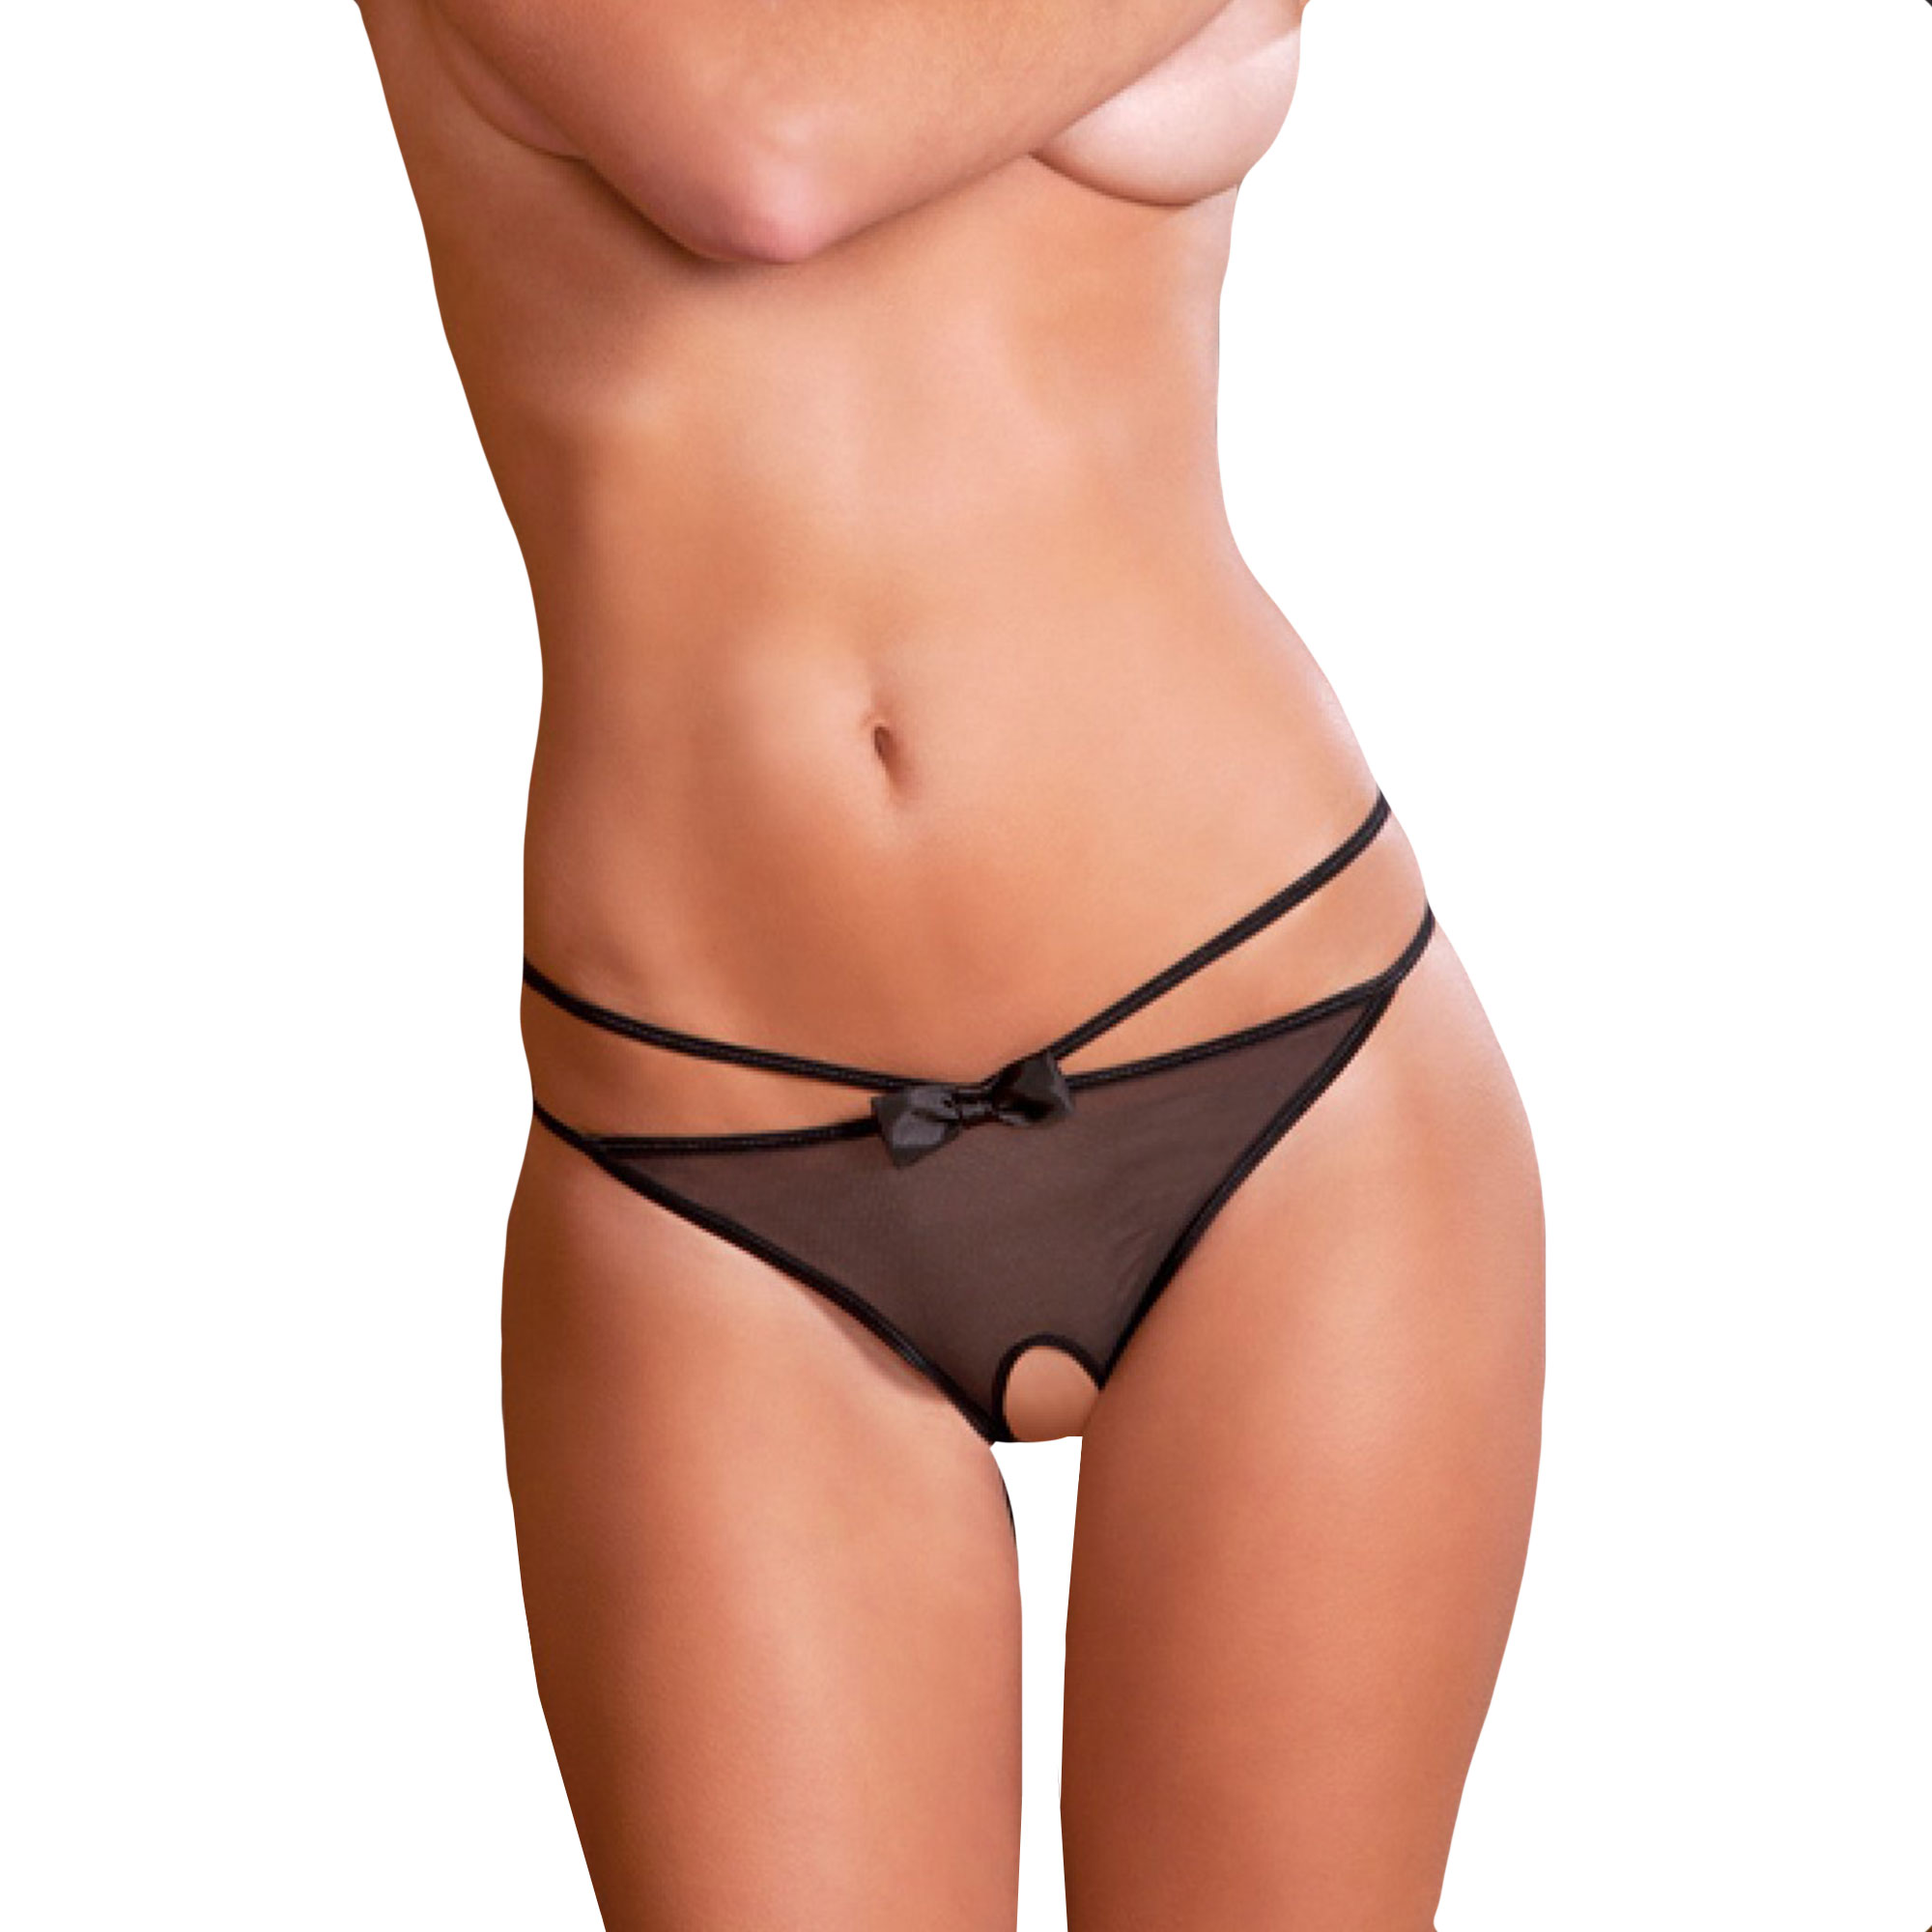 Image of   Crotchless Femme Fatale - Small/Medium